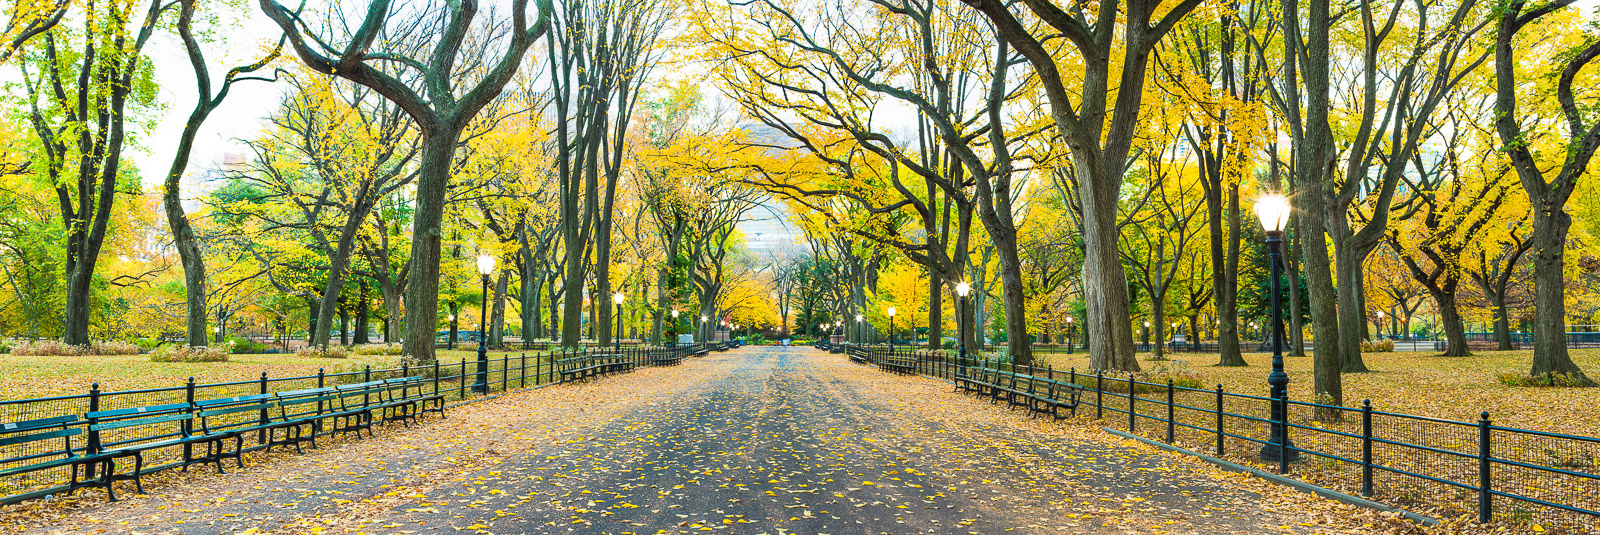 Walking on Gold,Central Park,Cityscape,Elm,Fall,Horizontal,New York City,Trees,Yellow,autumn,panoramic, photo